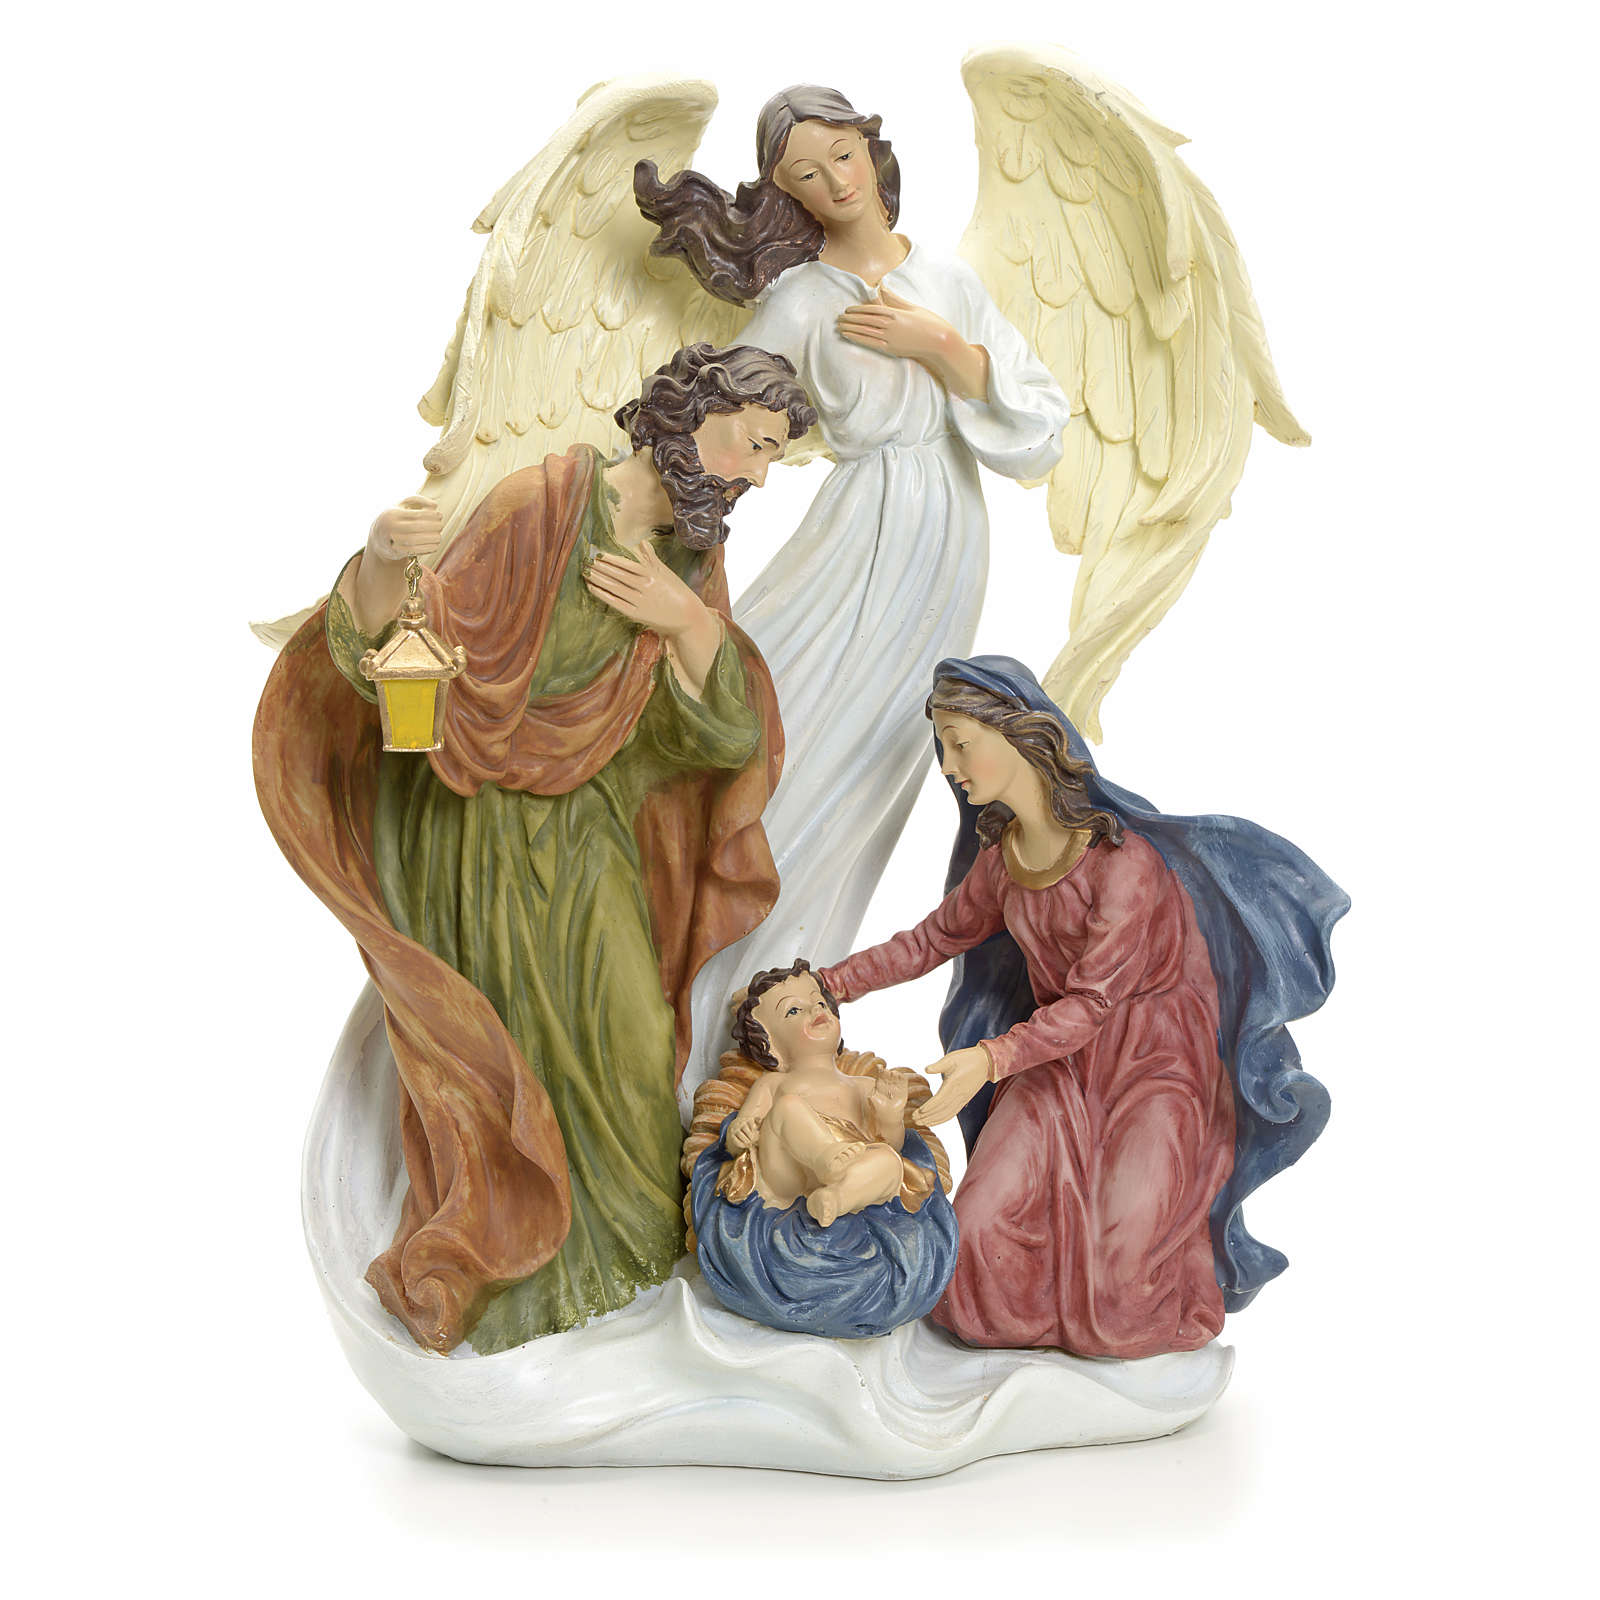 Nativity scene set angel 36 cm figurines 4